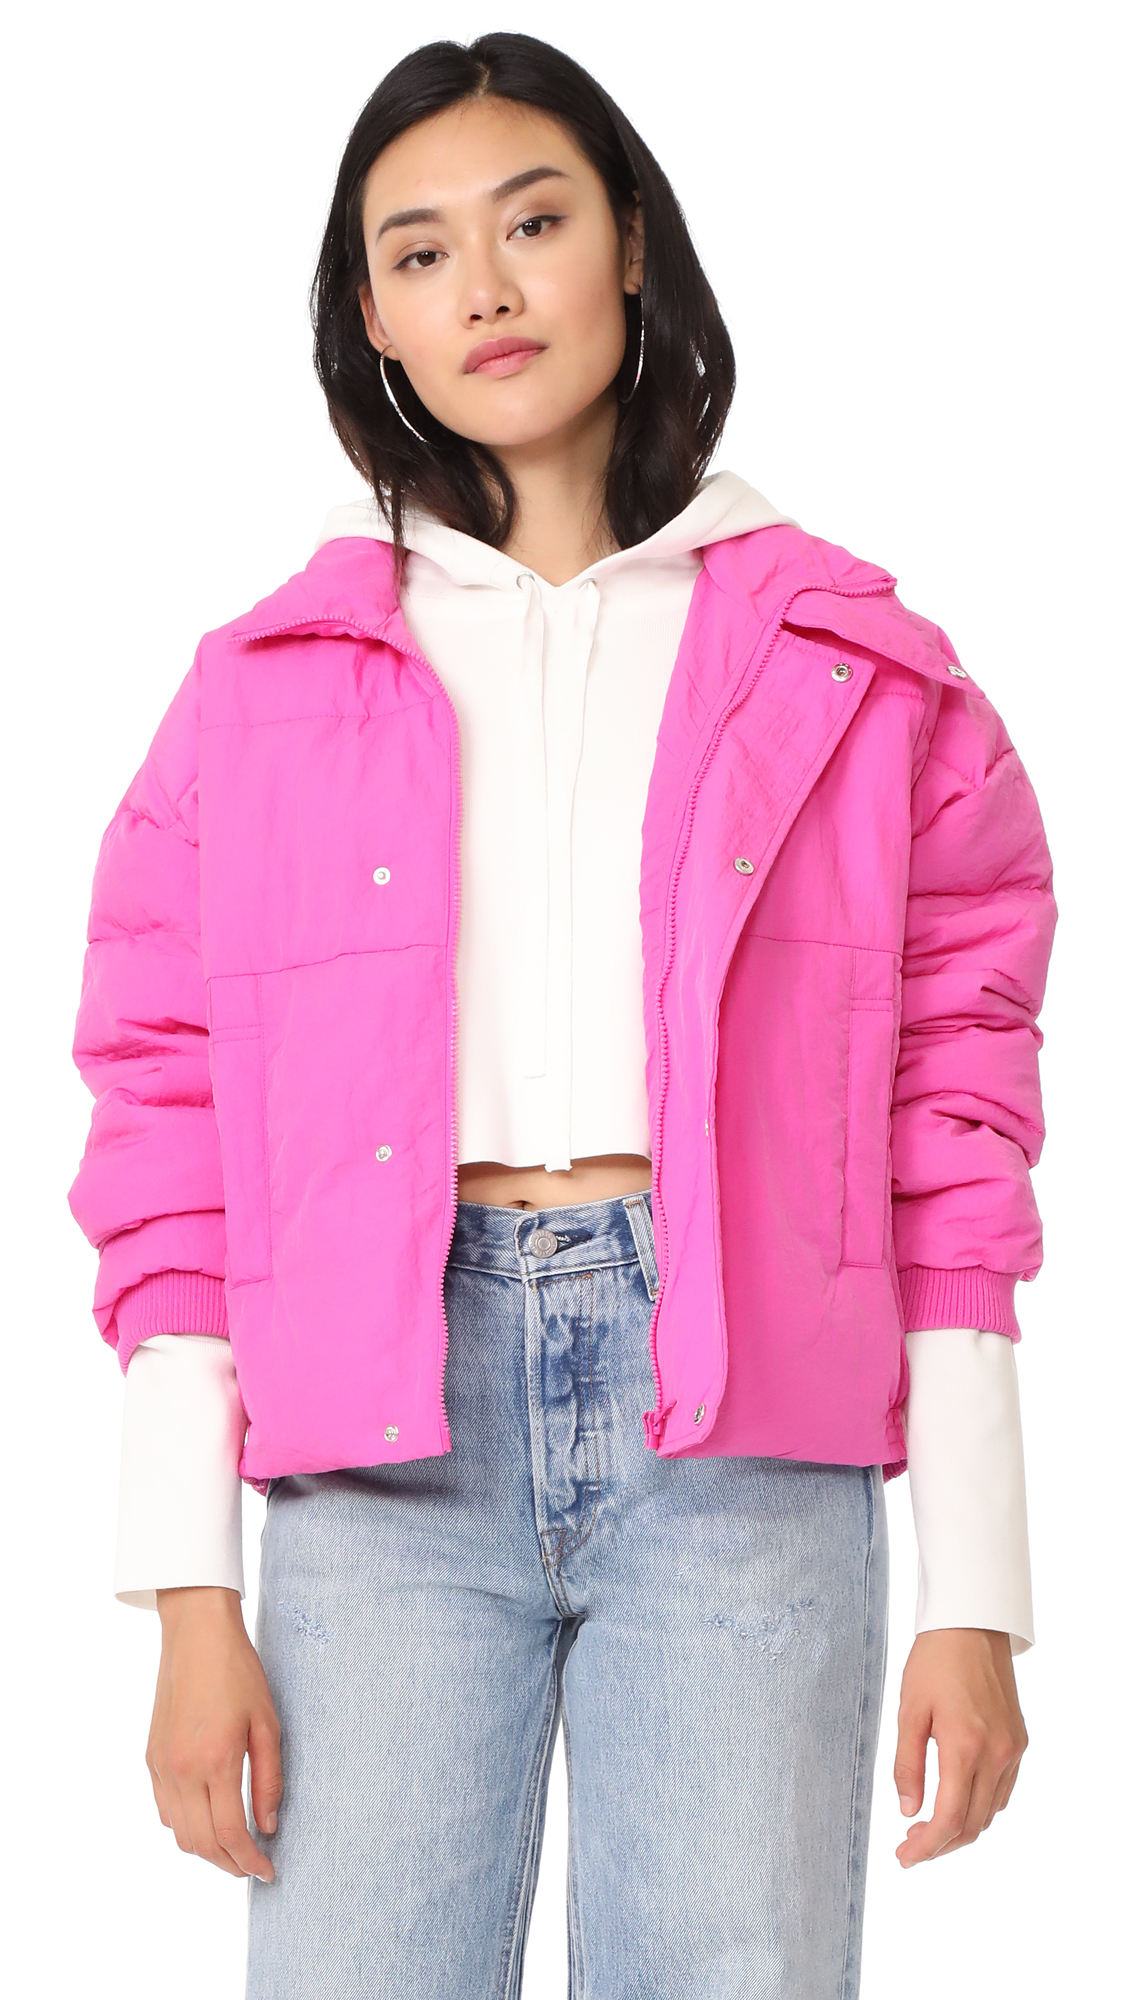 Free People Slouchy Cropped Puffer Coat - Pink